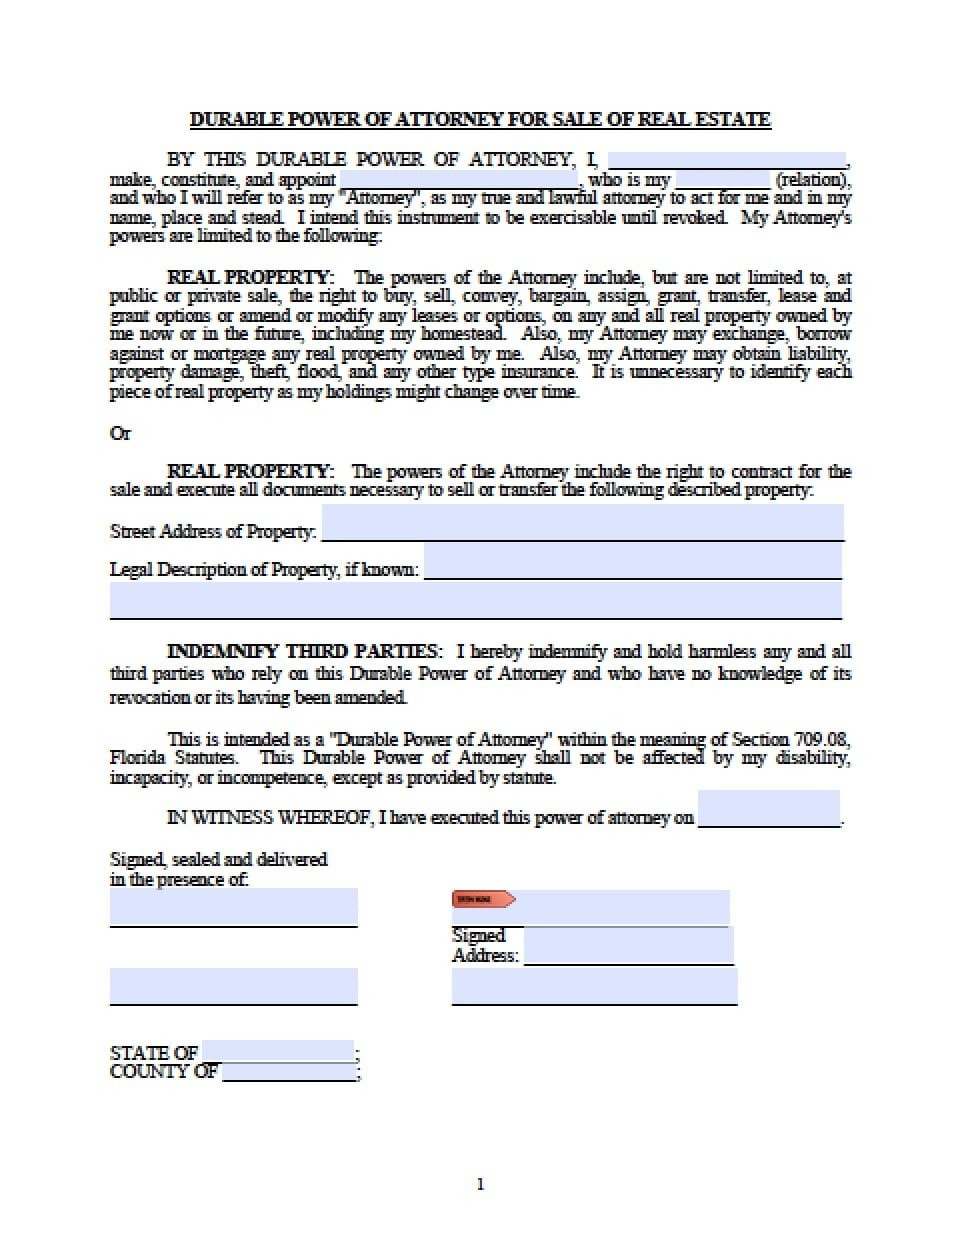 Florida Real Estate Only Power Of Attorney Form - Power Of Attorney - Free Printable Power Of Attorney Form Florida